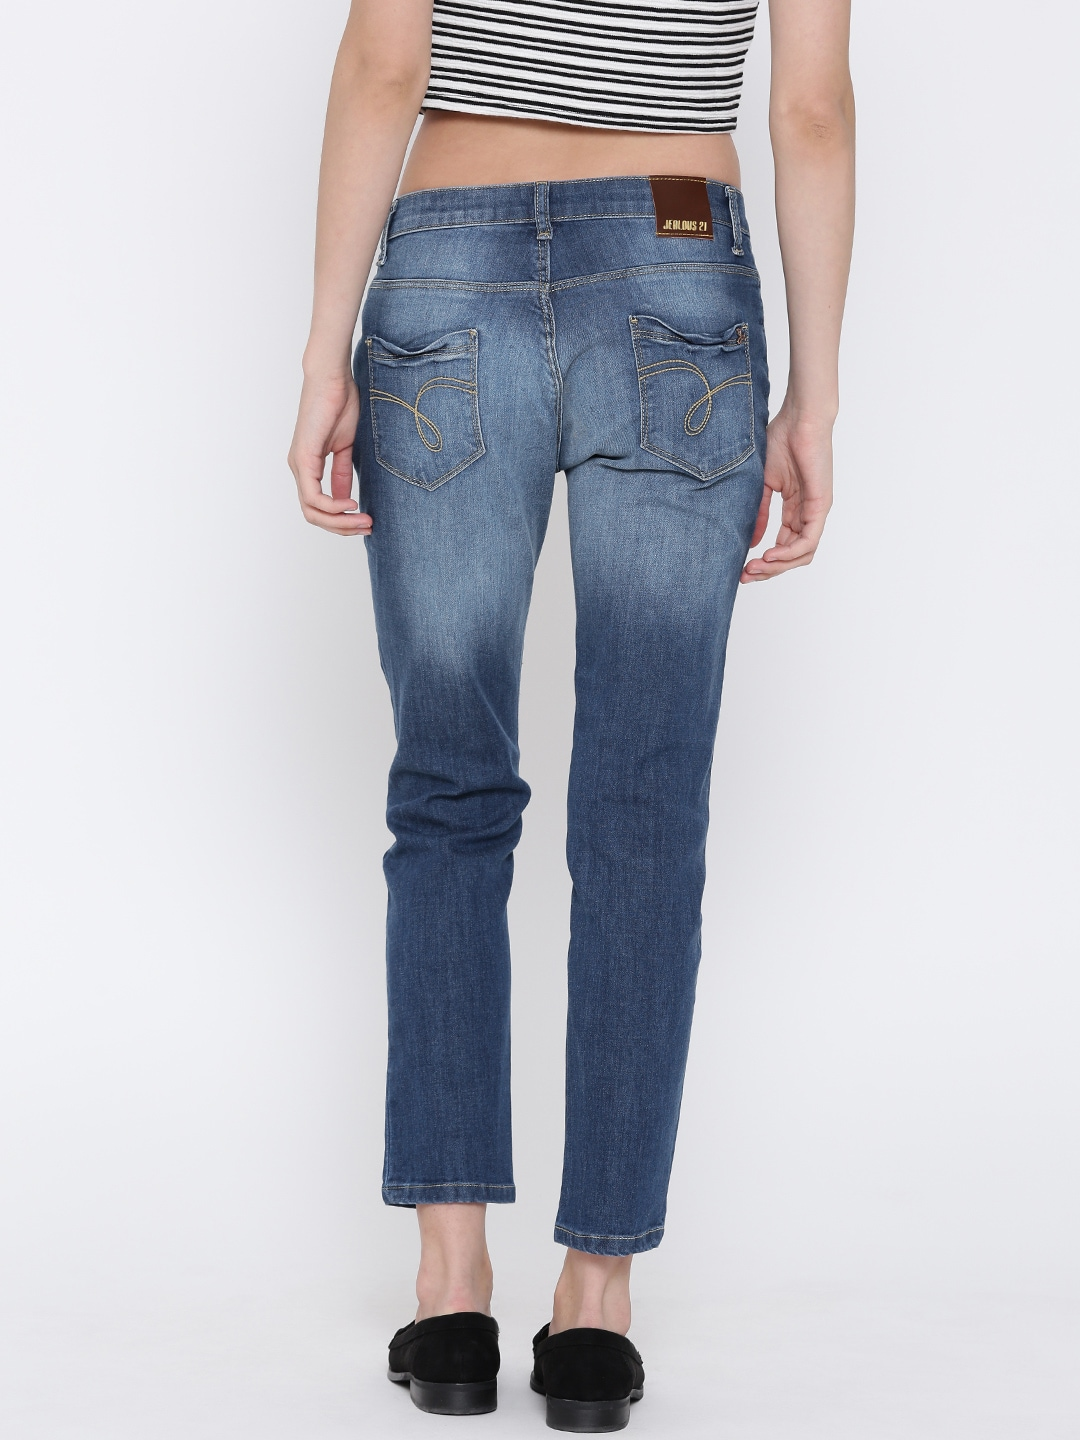 Visit smashingprogrammsrj.tk for a great selection of Women's Regular Fit Jeans from the brands you trust and at guaranteed lowest prices. Shop today!